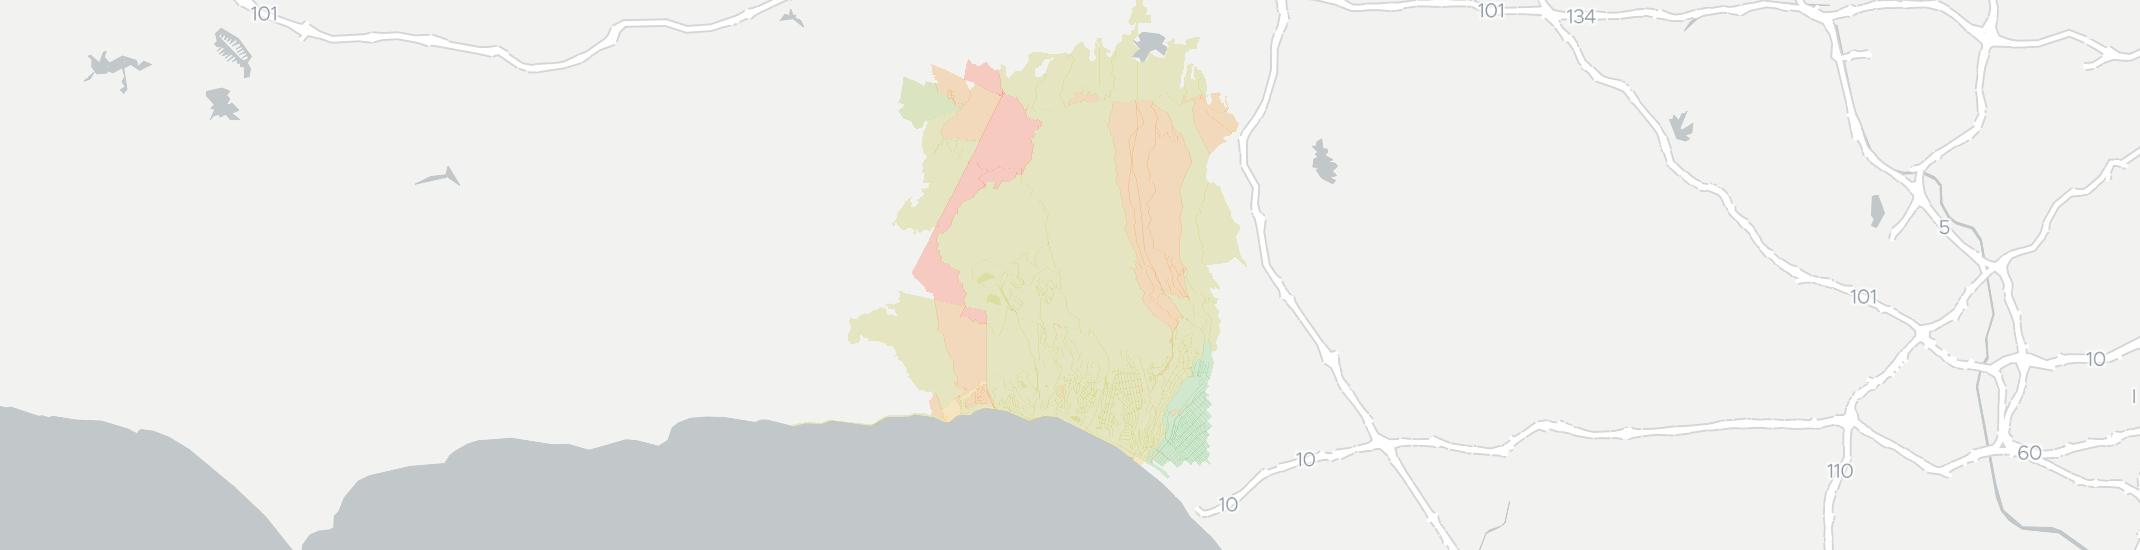 Pacific Palisades Has 16 Internet Service Providers